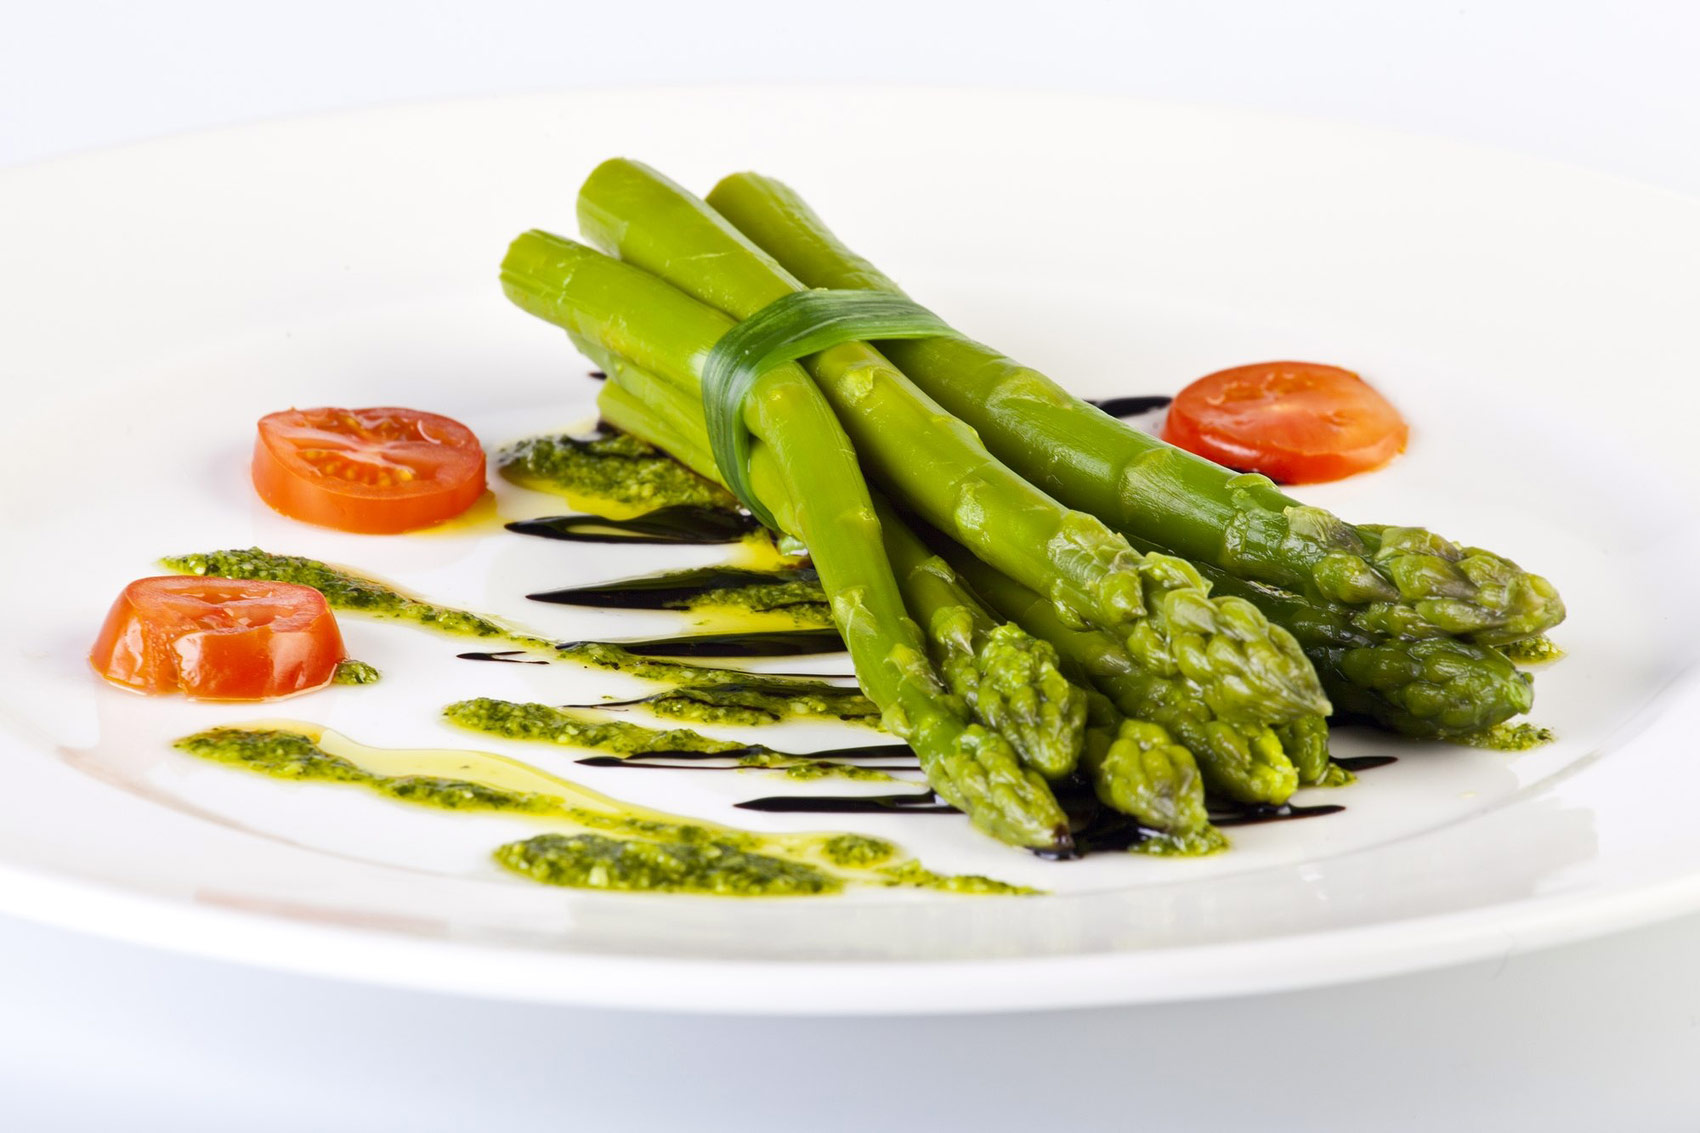 Aparagus stems with sauce - Food product photography